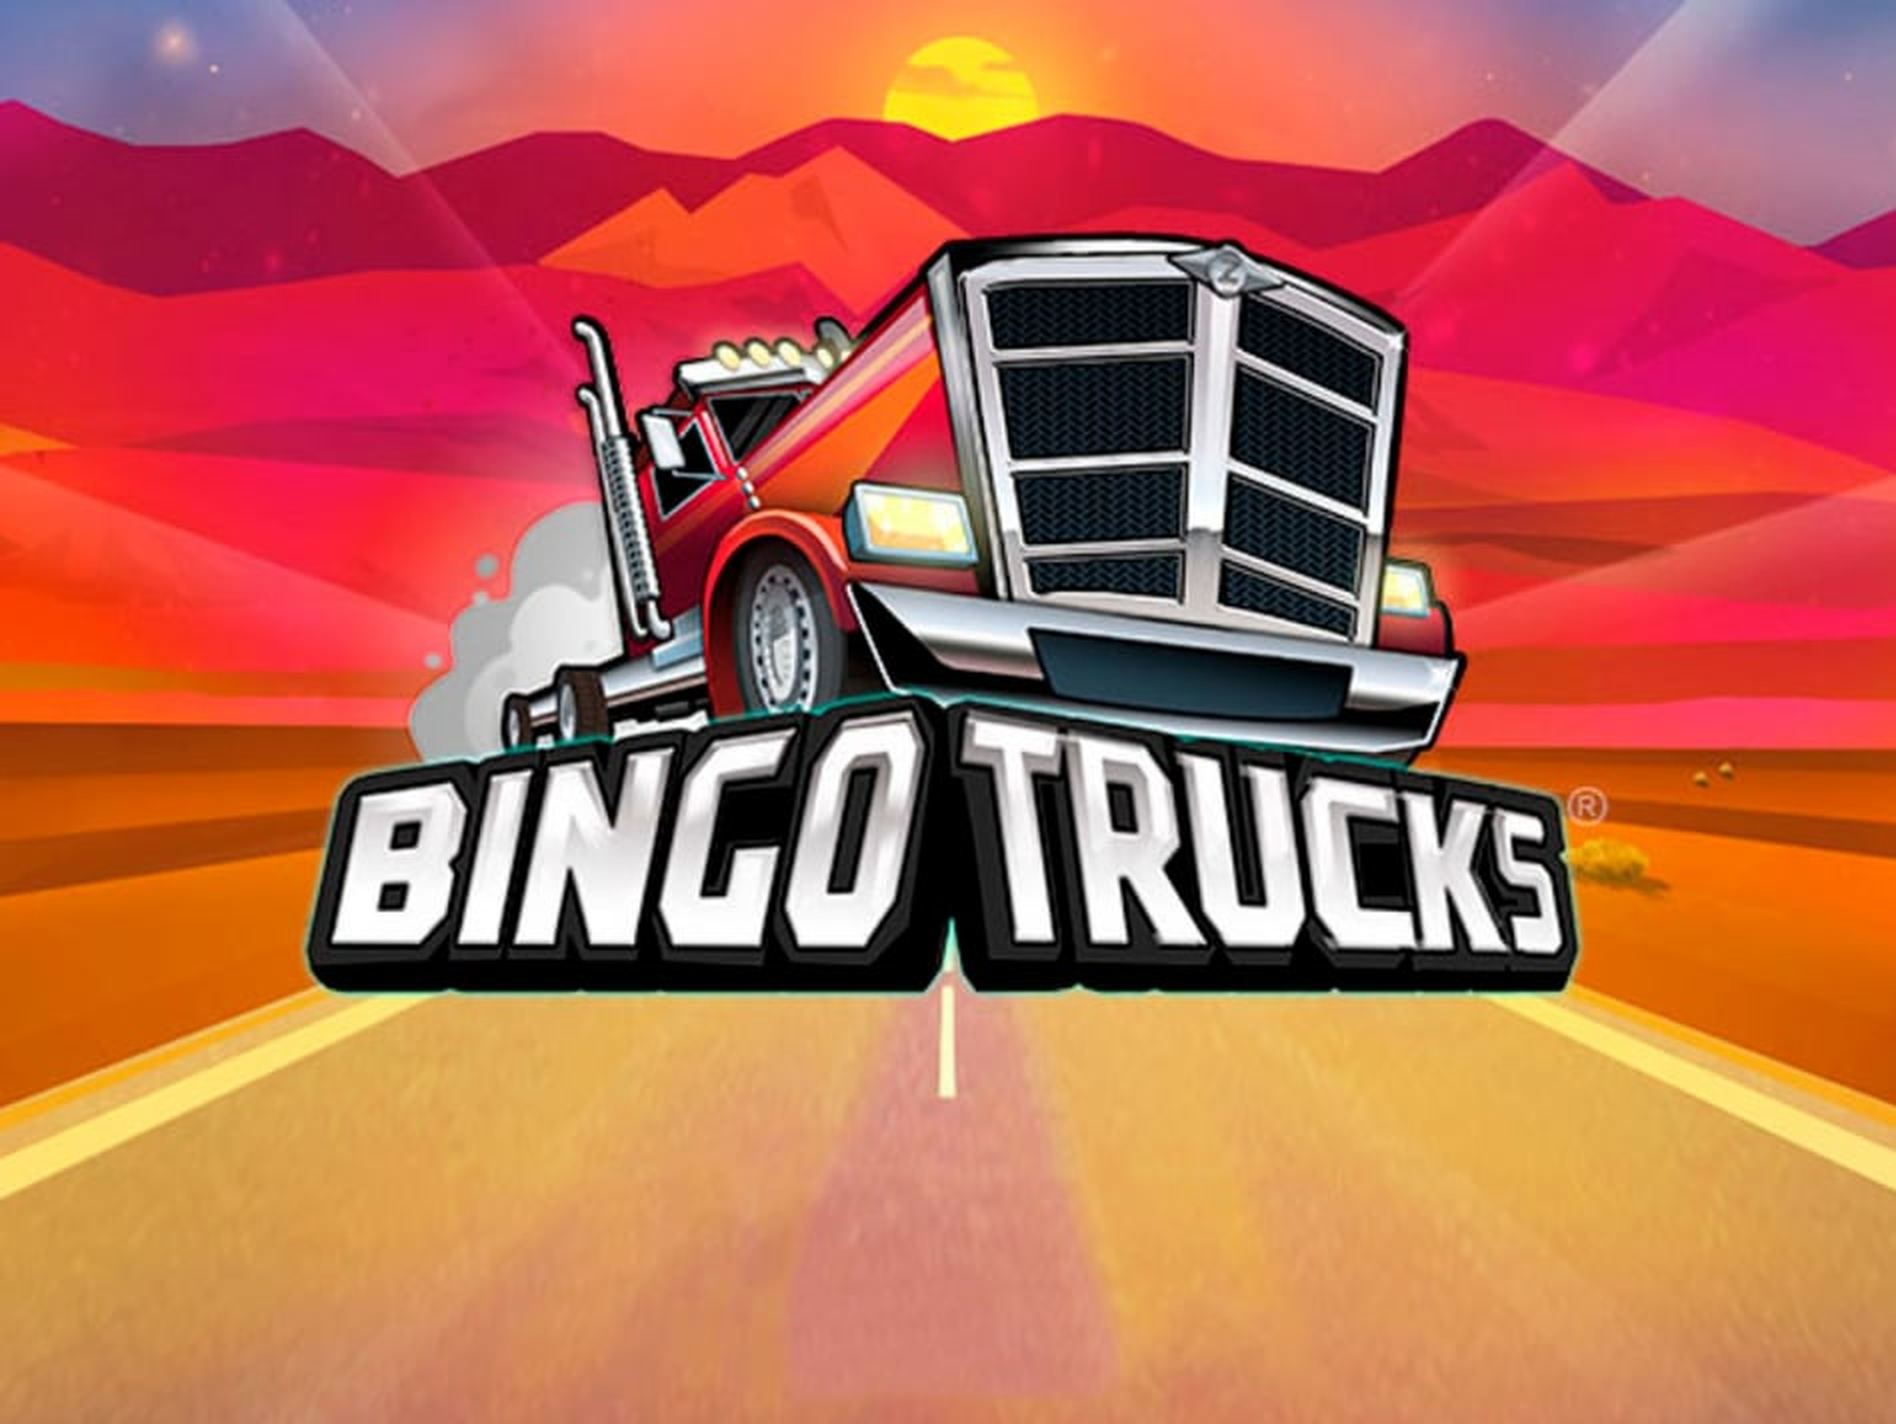 The Bingo Trucks Online Slot Demo Game by Zitro